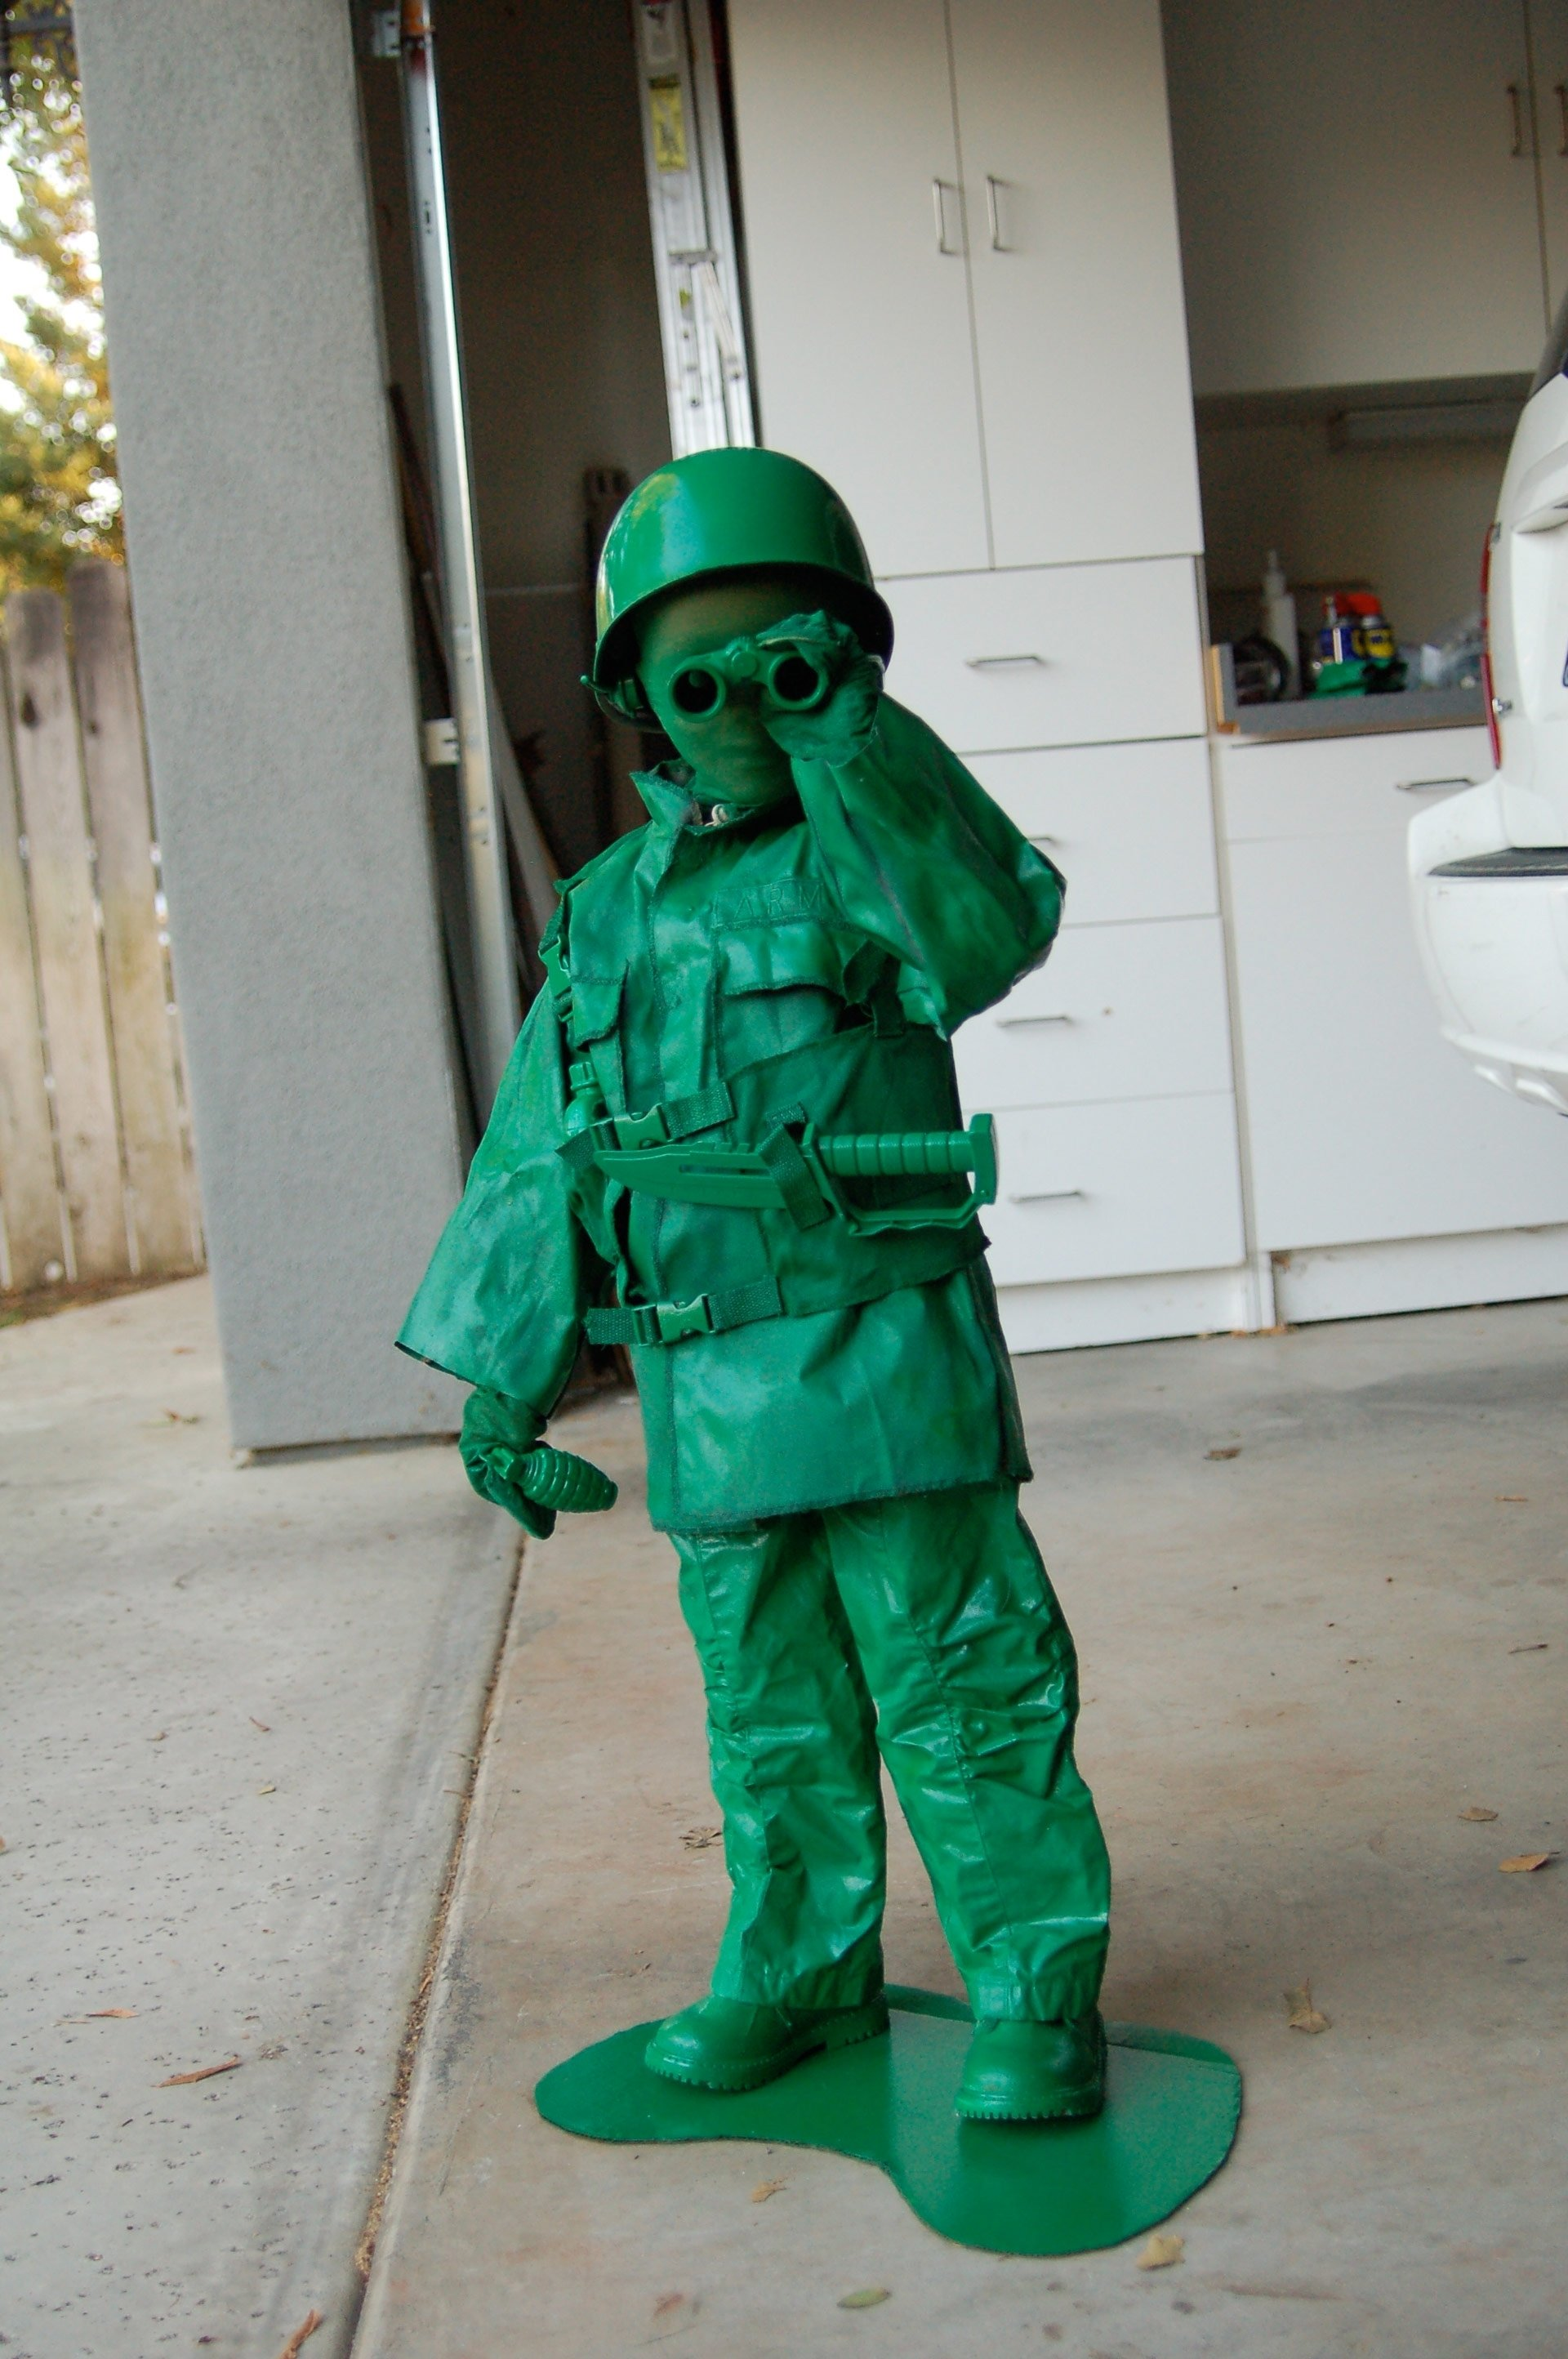 10 Perfect Ideas For Kids Halloween Costumes 62 utterly adorable homemade halloween costumes for kids army men 5 2021